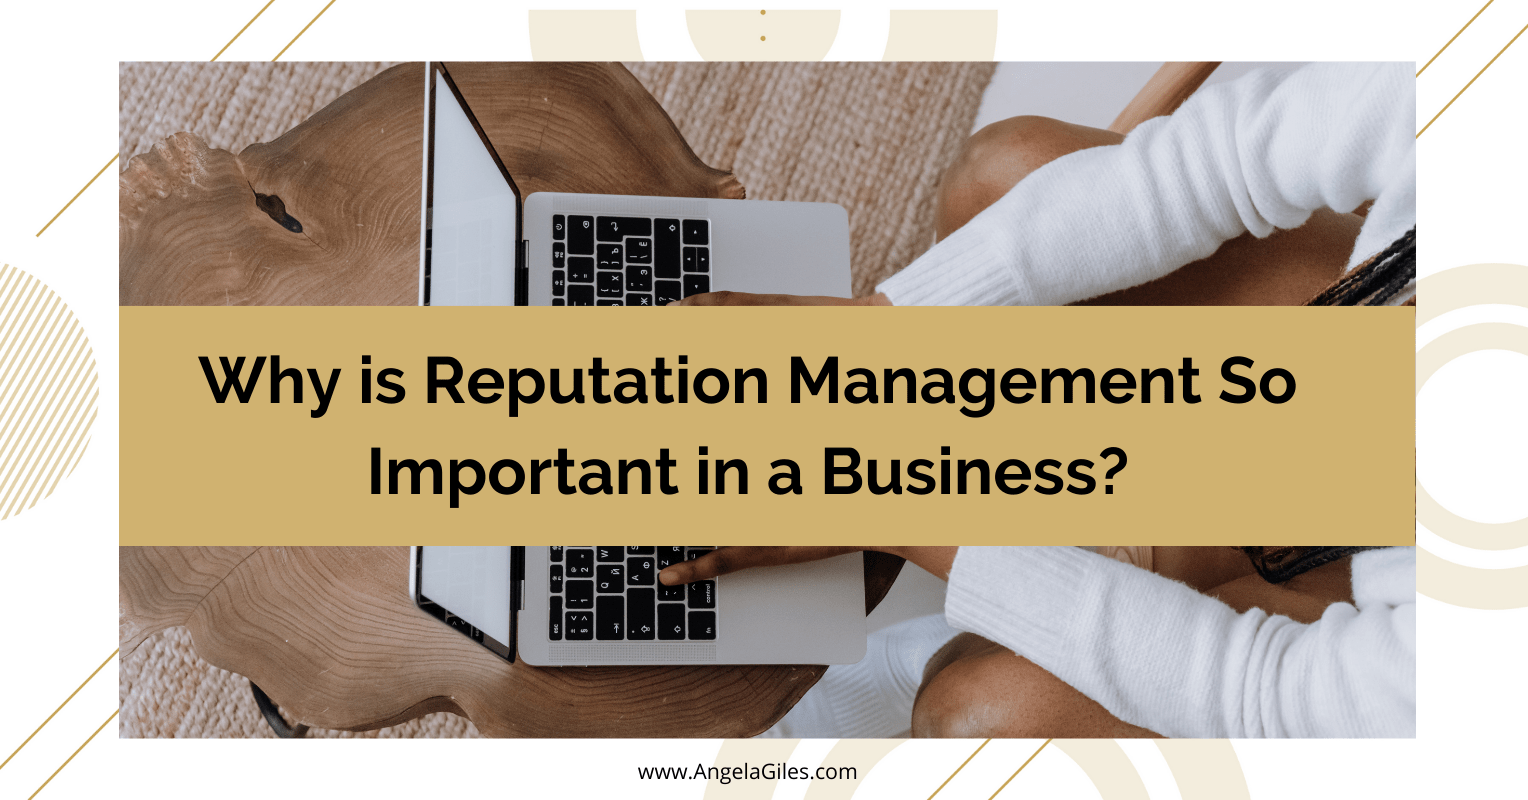 Why is reputation management so important in a business?